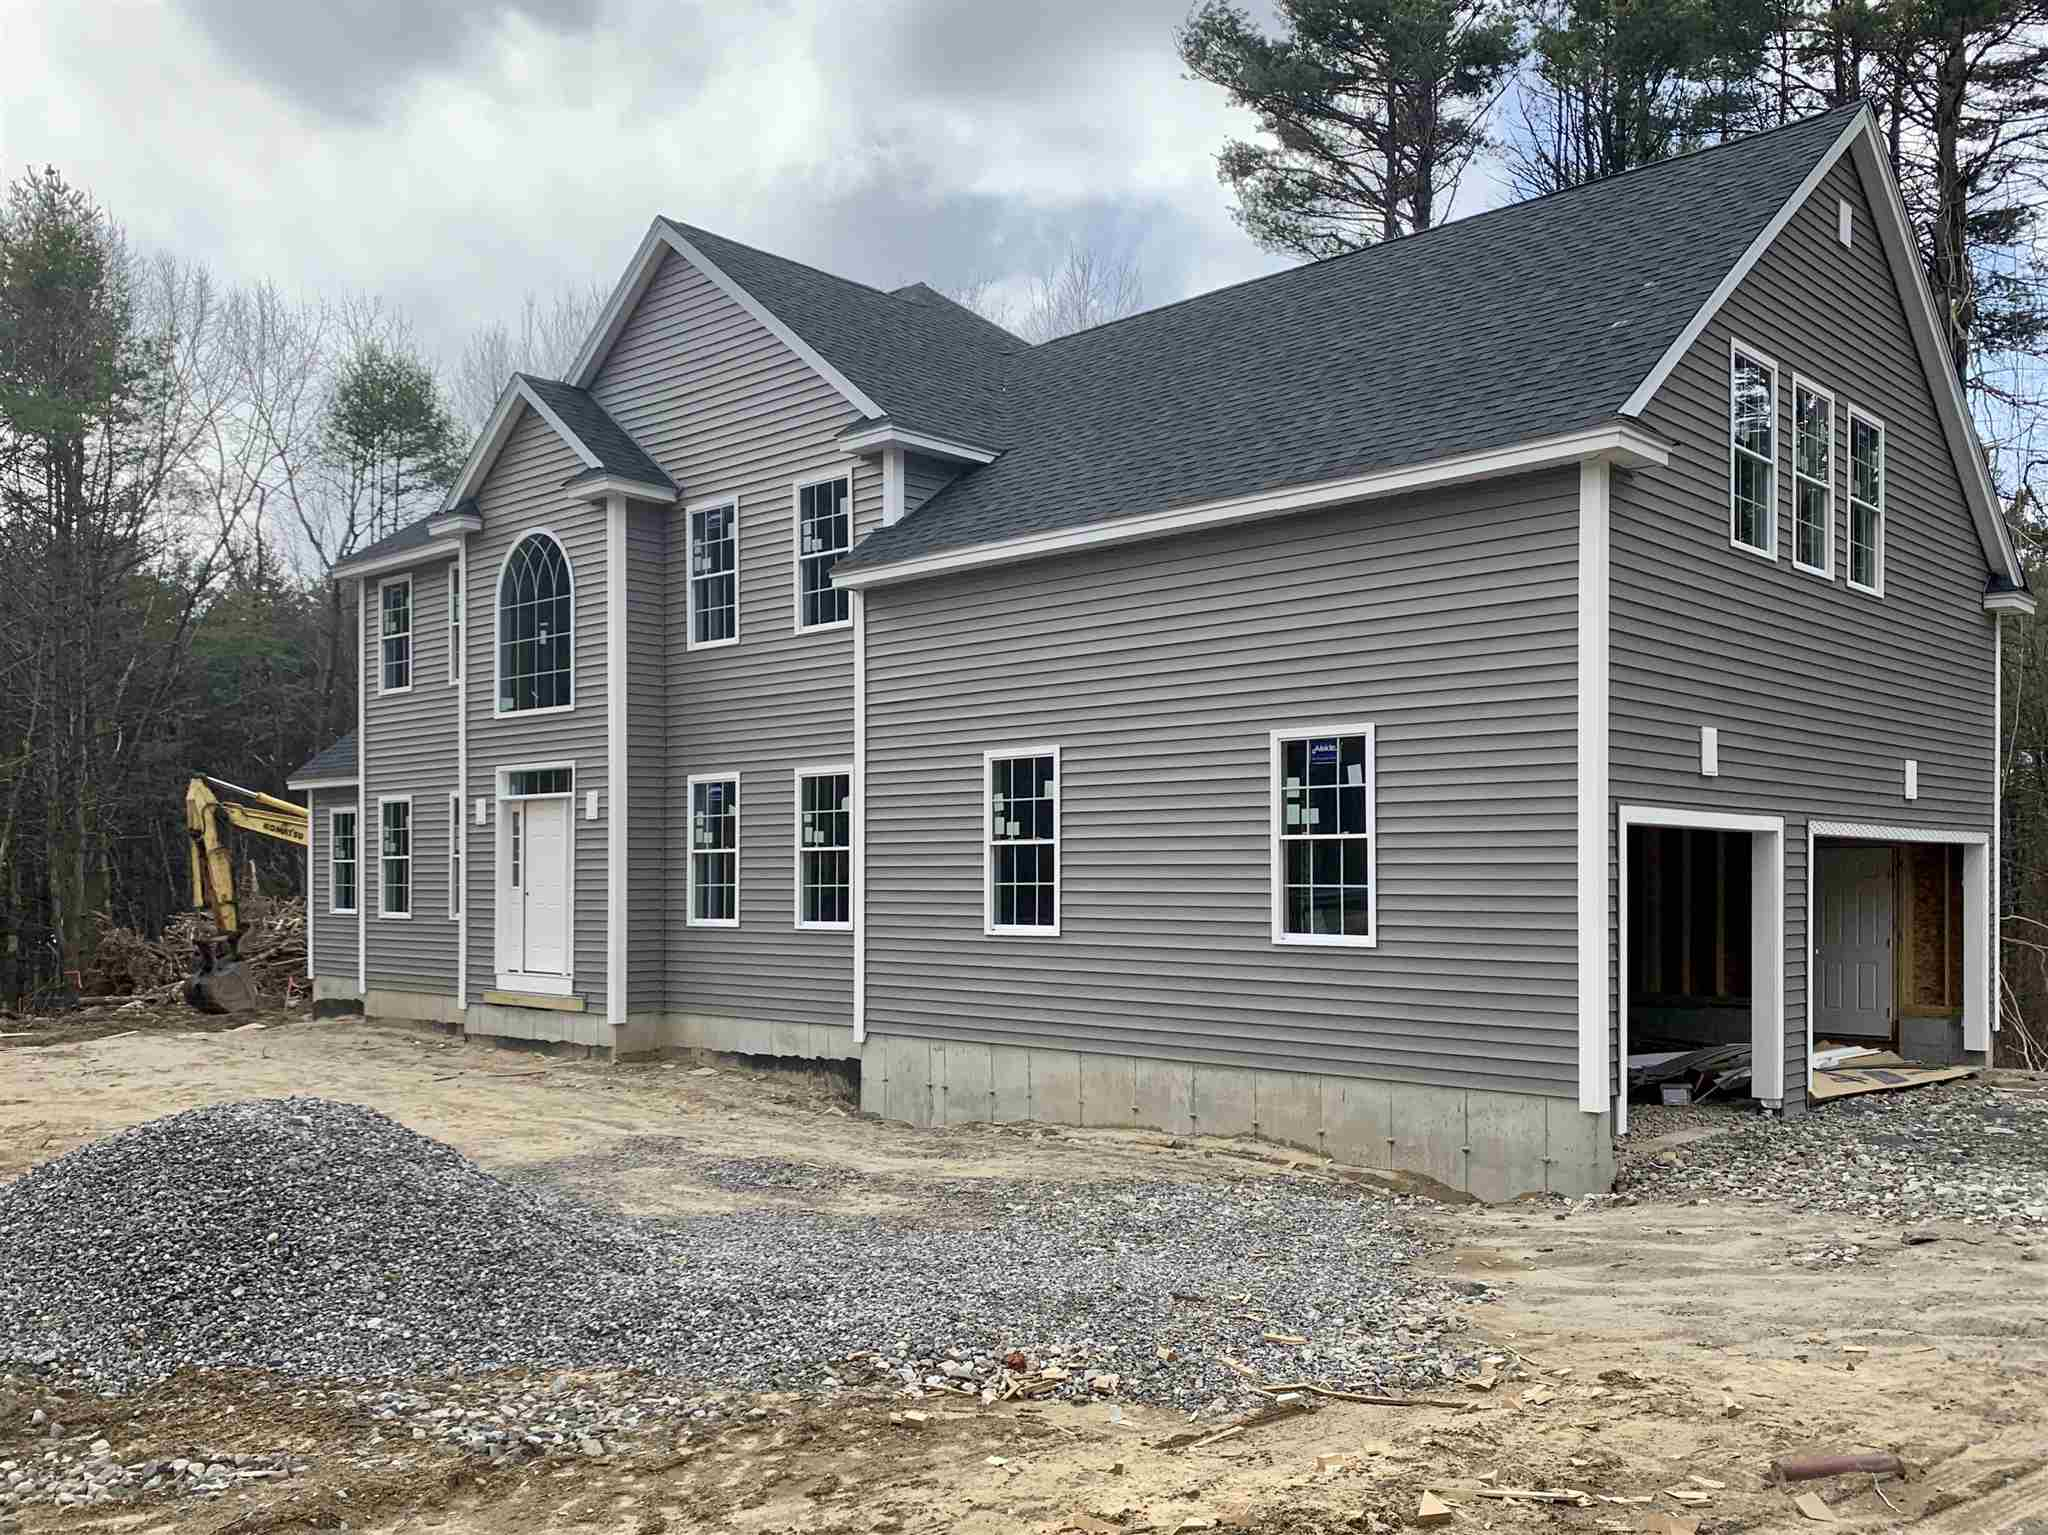 Photo of 3 Meetinghouse Road Windham NH 03087